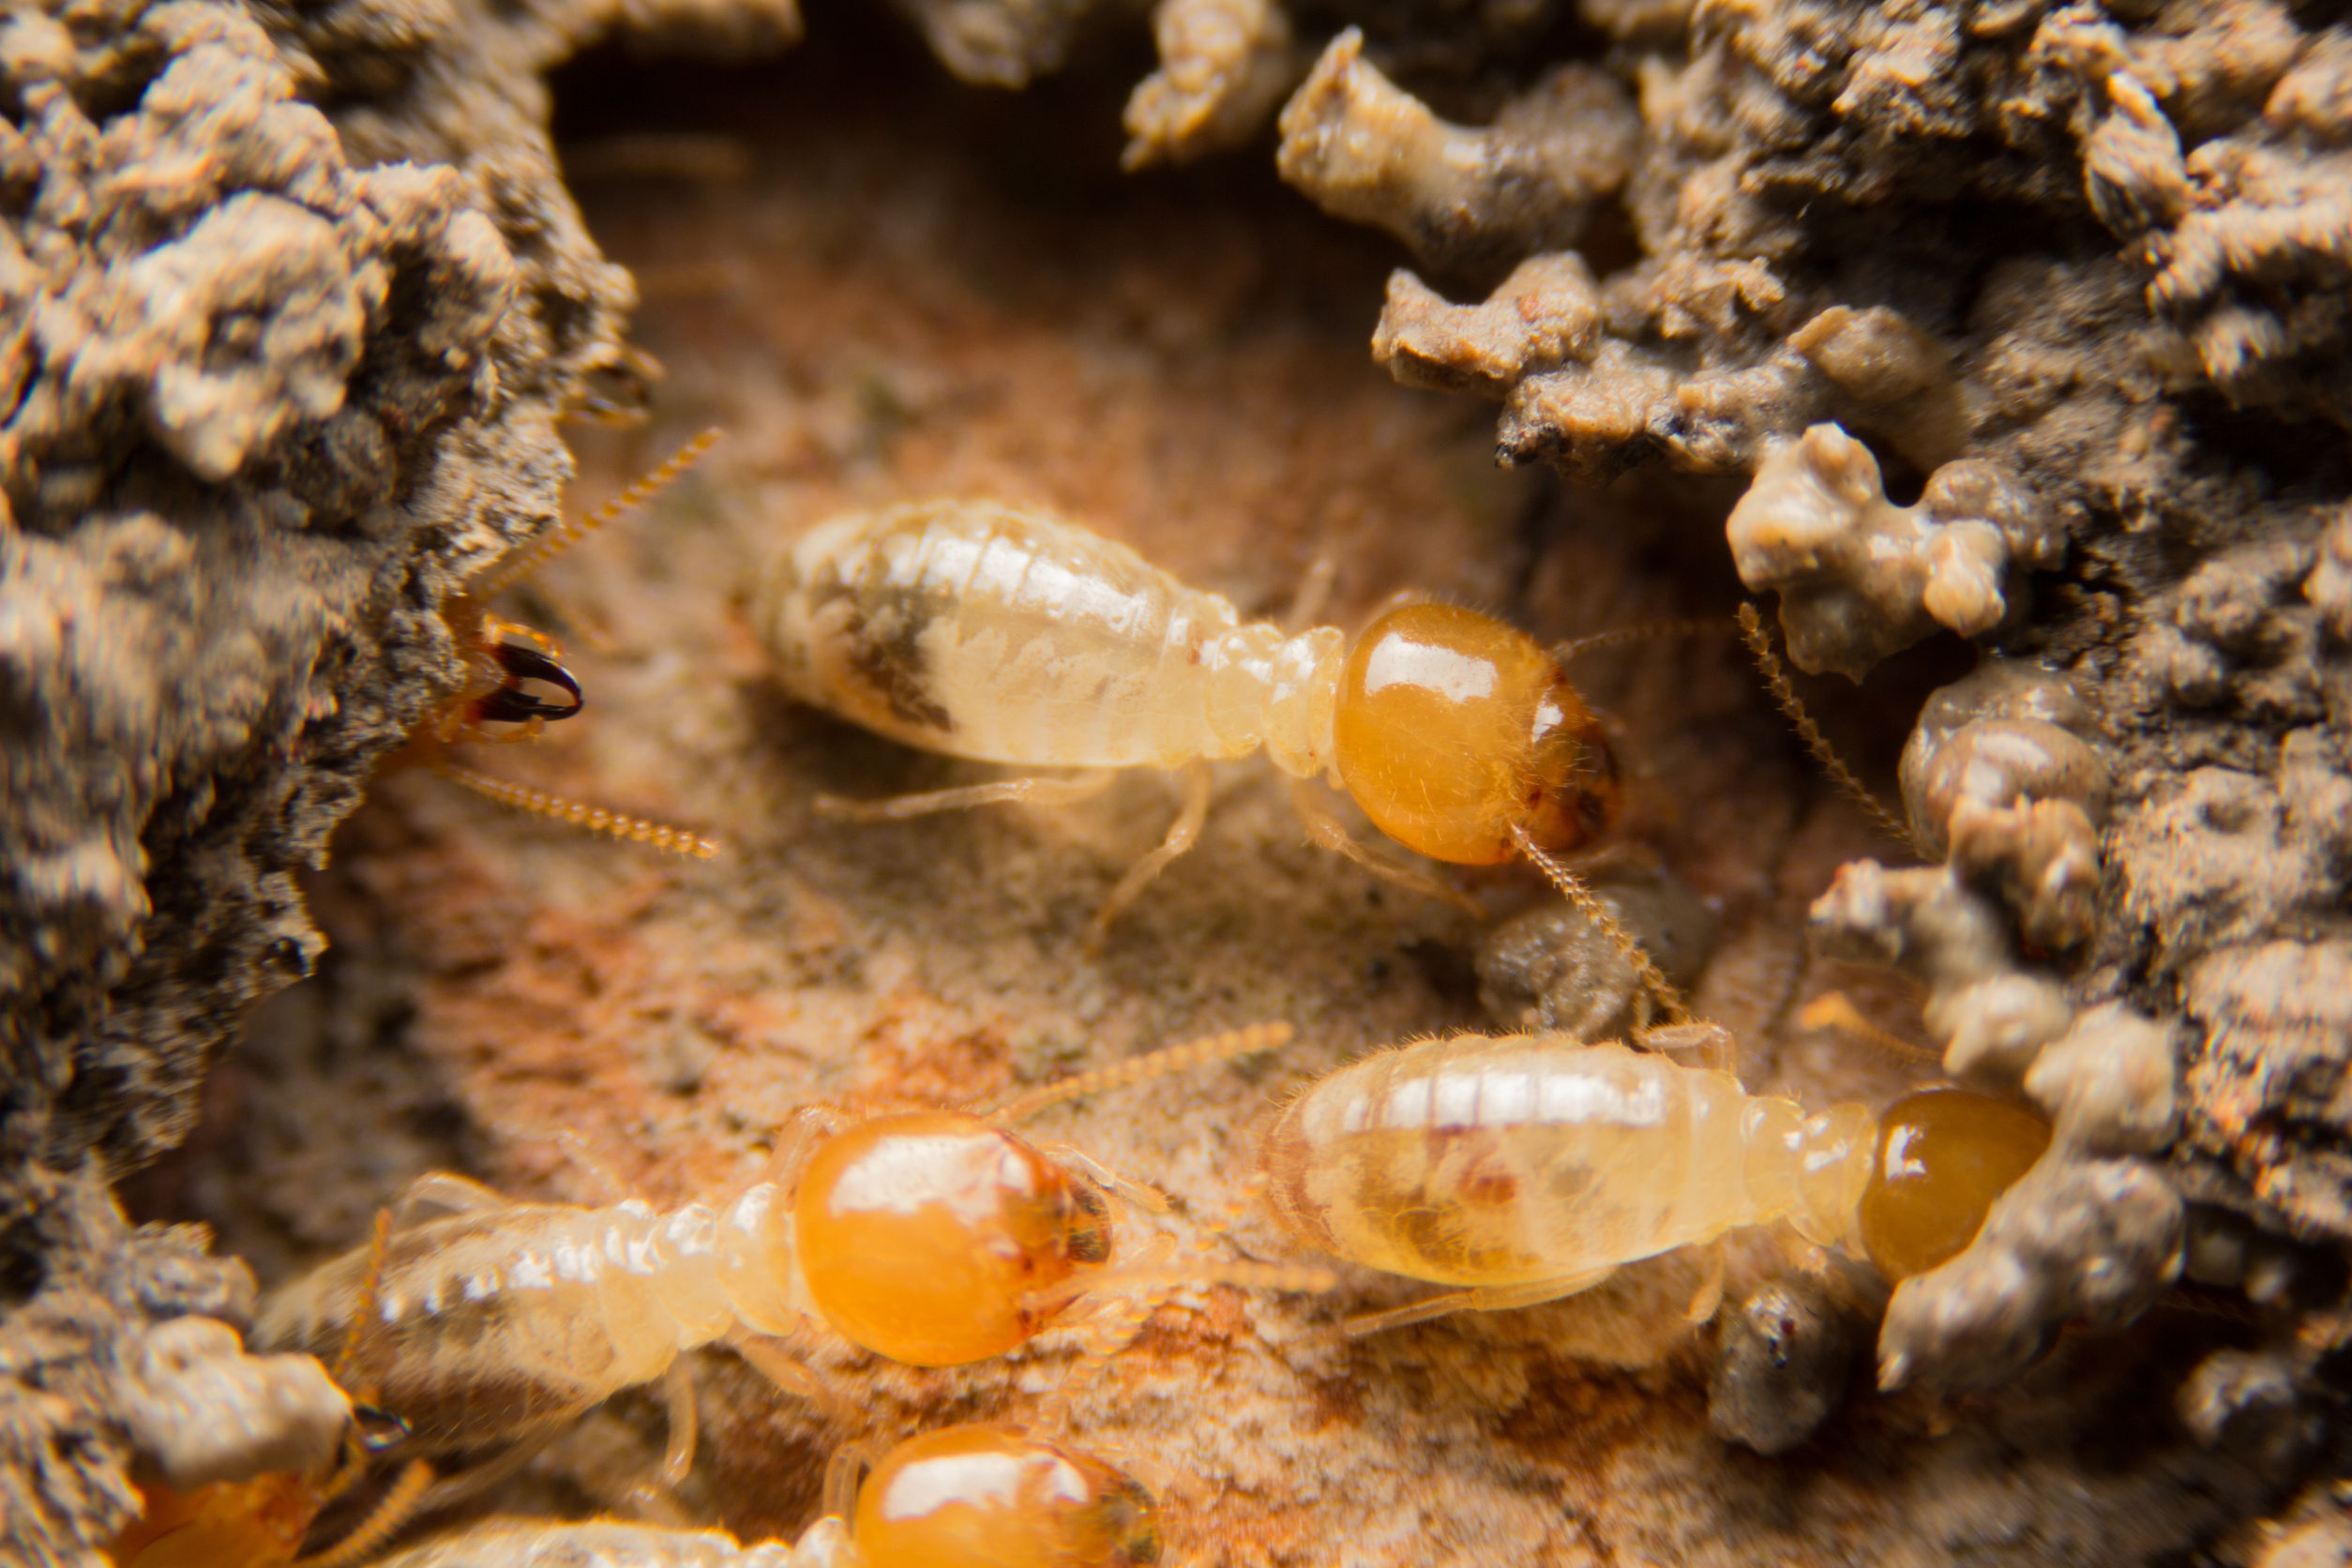 5 Home Remedies To Get Rid Of Fire Ants - Premier Pest